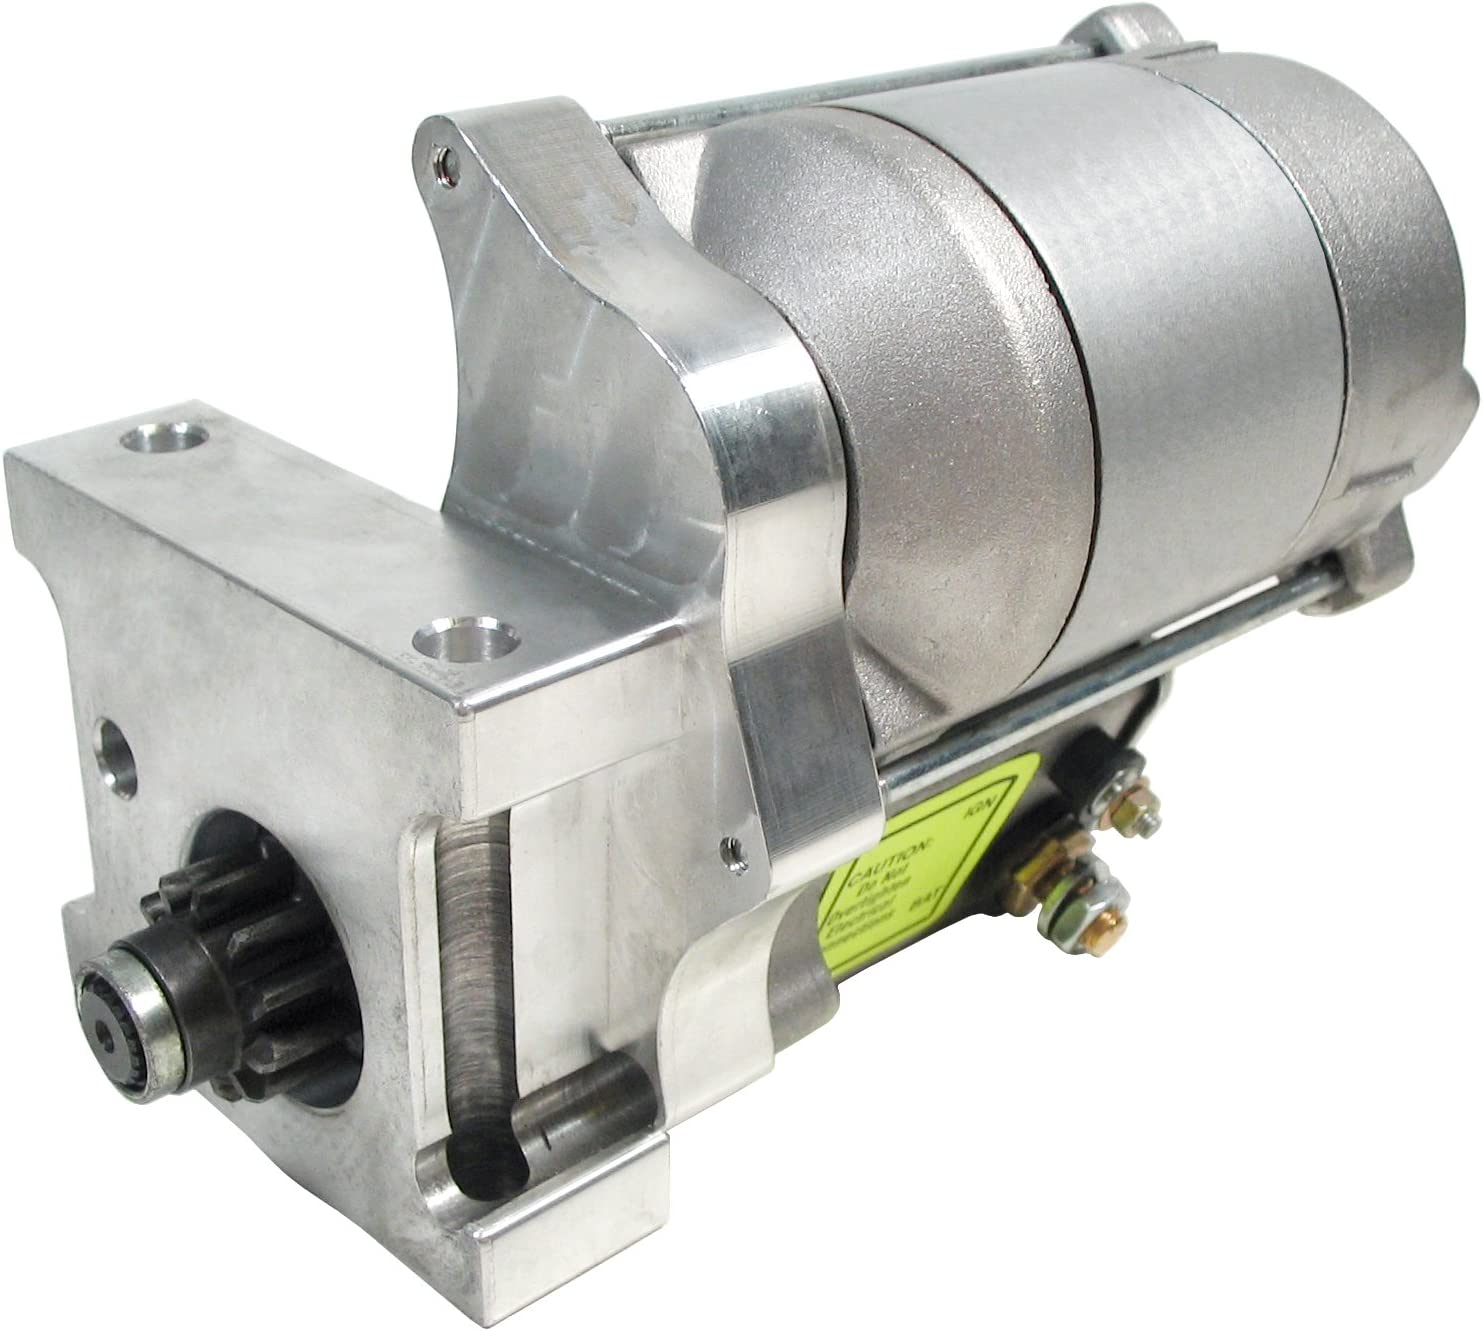 NEW POWERMASTER XS TORQUE STARTER,DENSO,SBC,BBC,CHEVY,168 TOOTH,200 FT LBS